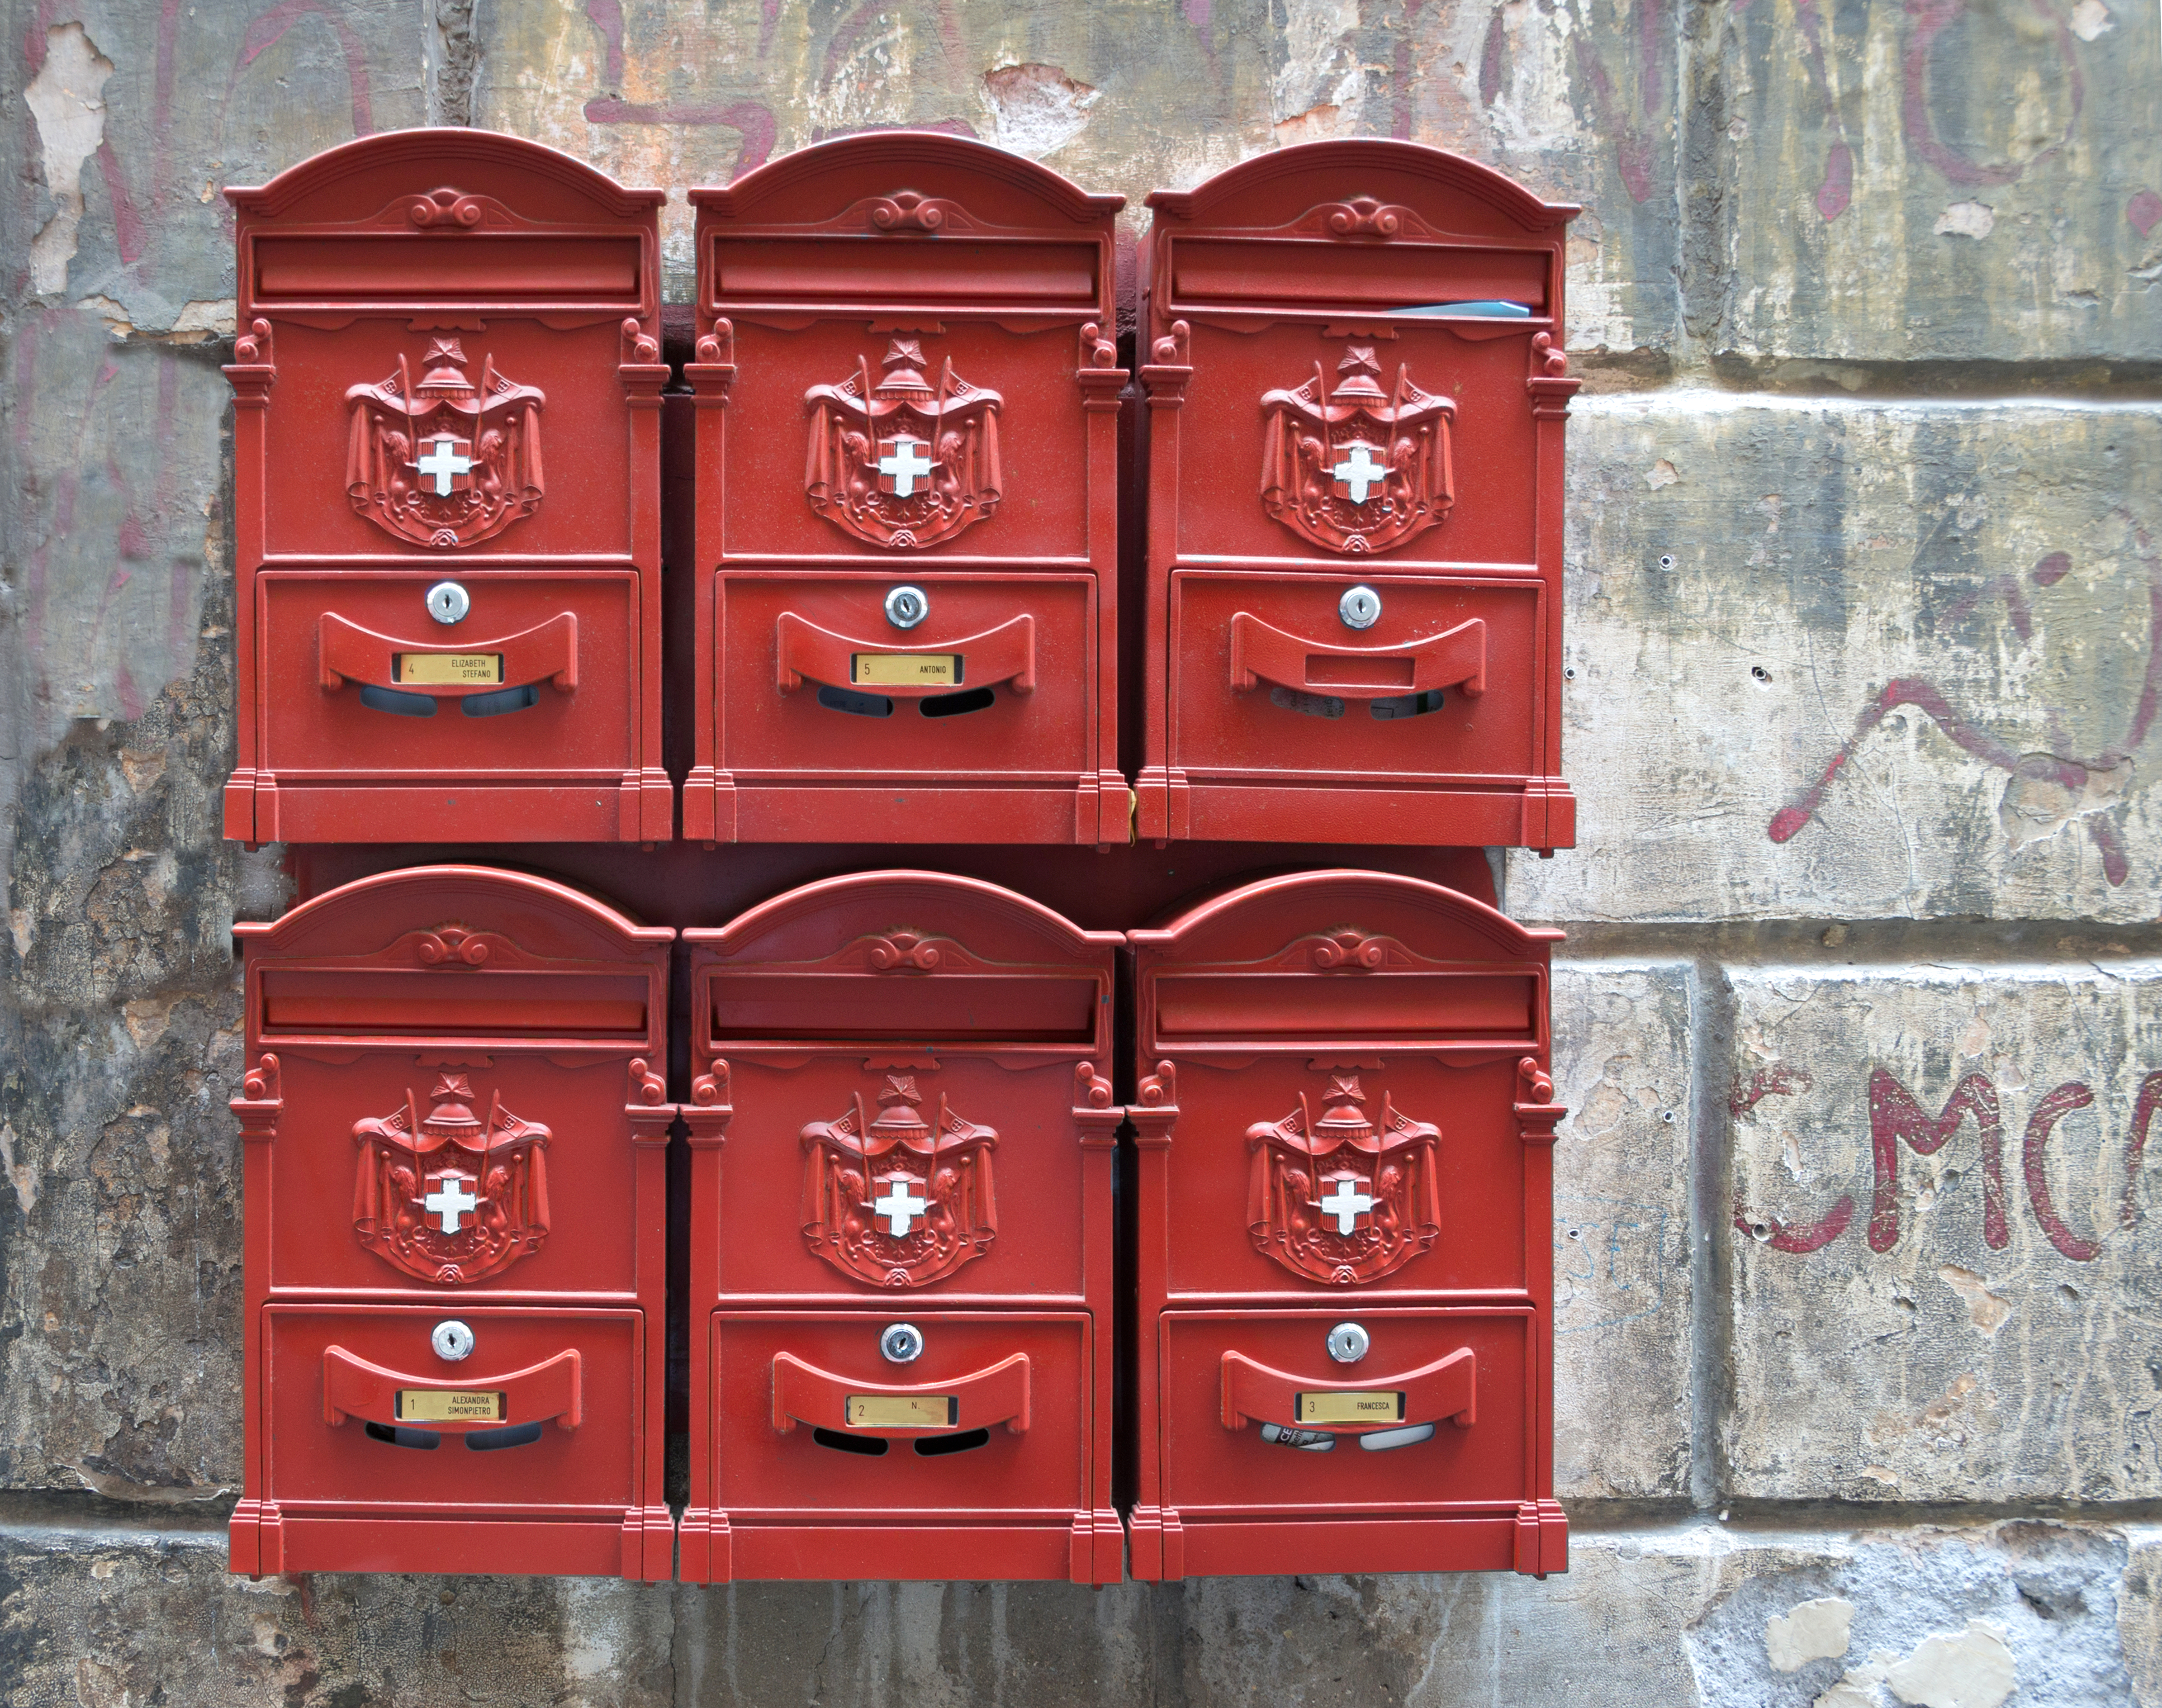 File:Mail boxes, Rome, Italy.jpg - Wikimedia Commons